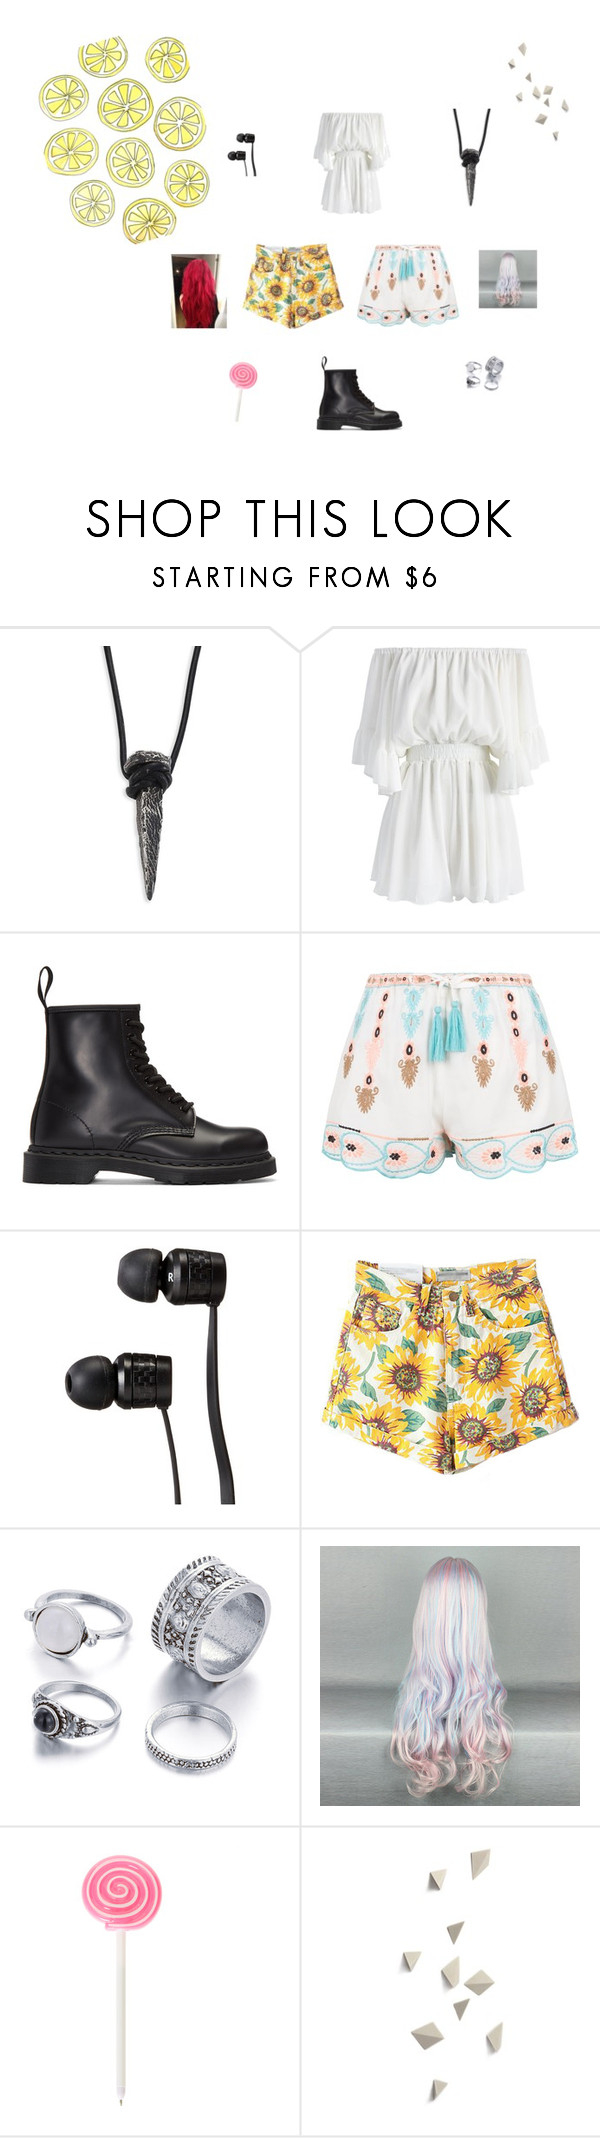 """Untitled #3"" by sarahjavorova on Polyvore featuring King Baby Studio, Chicwish, Dr. Martens, New Look and Vans"